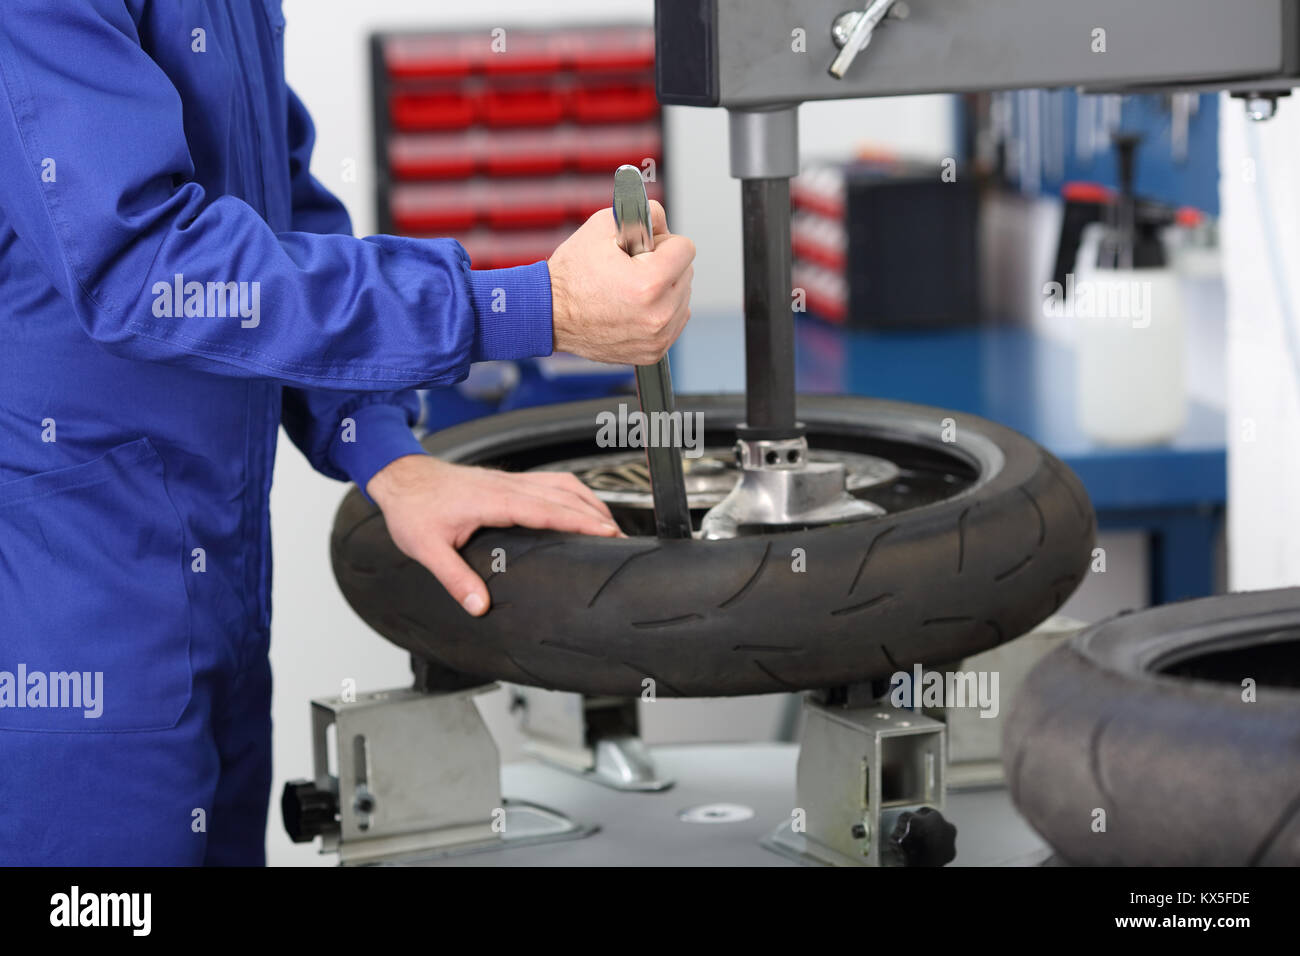 Motorbike mechanic disassembling an old tire in a mechanical workshop - Stock Image